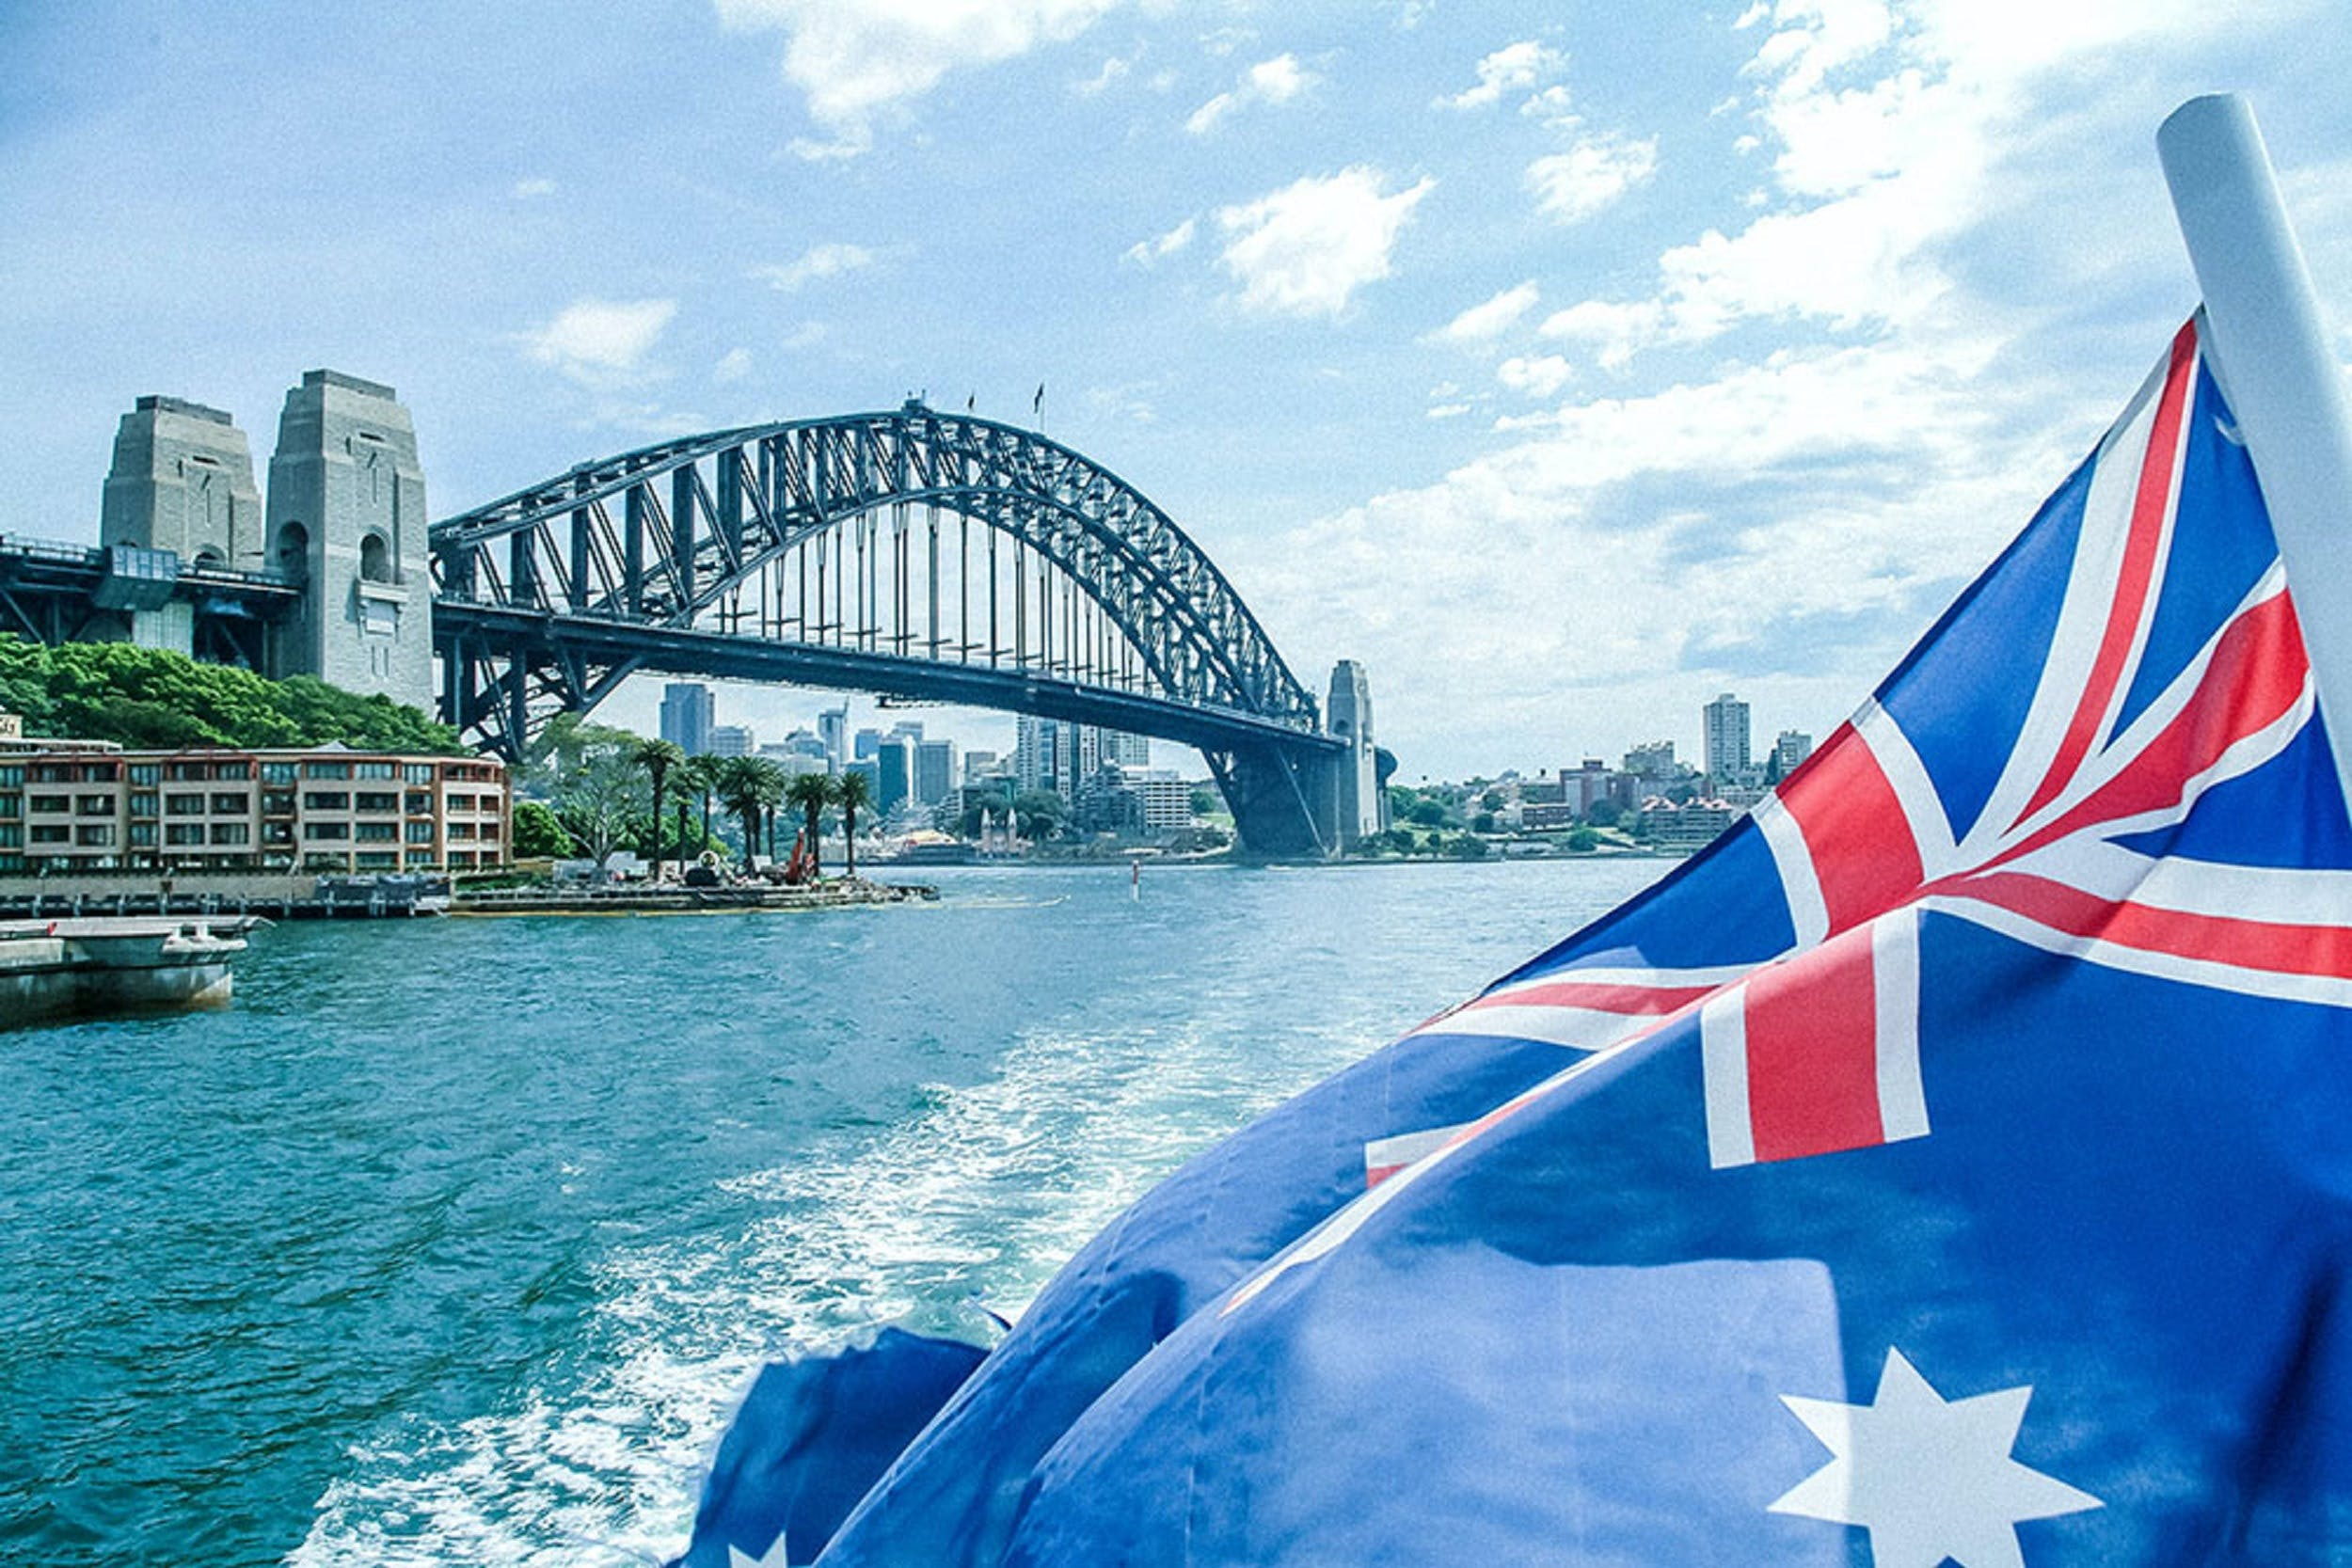 Australia Day Lunch and Dinner Cruises On Sydney Harbour with Sydney Showboats - Broome Tourism